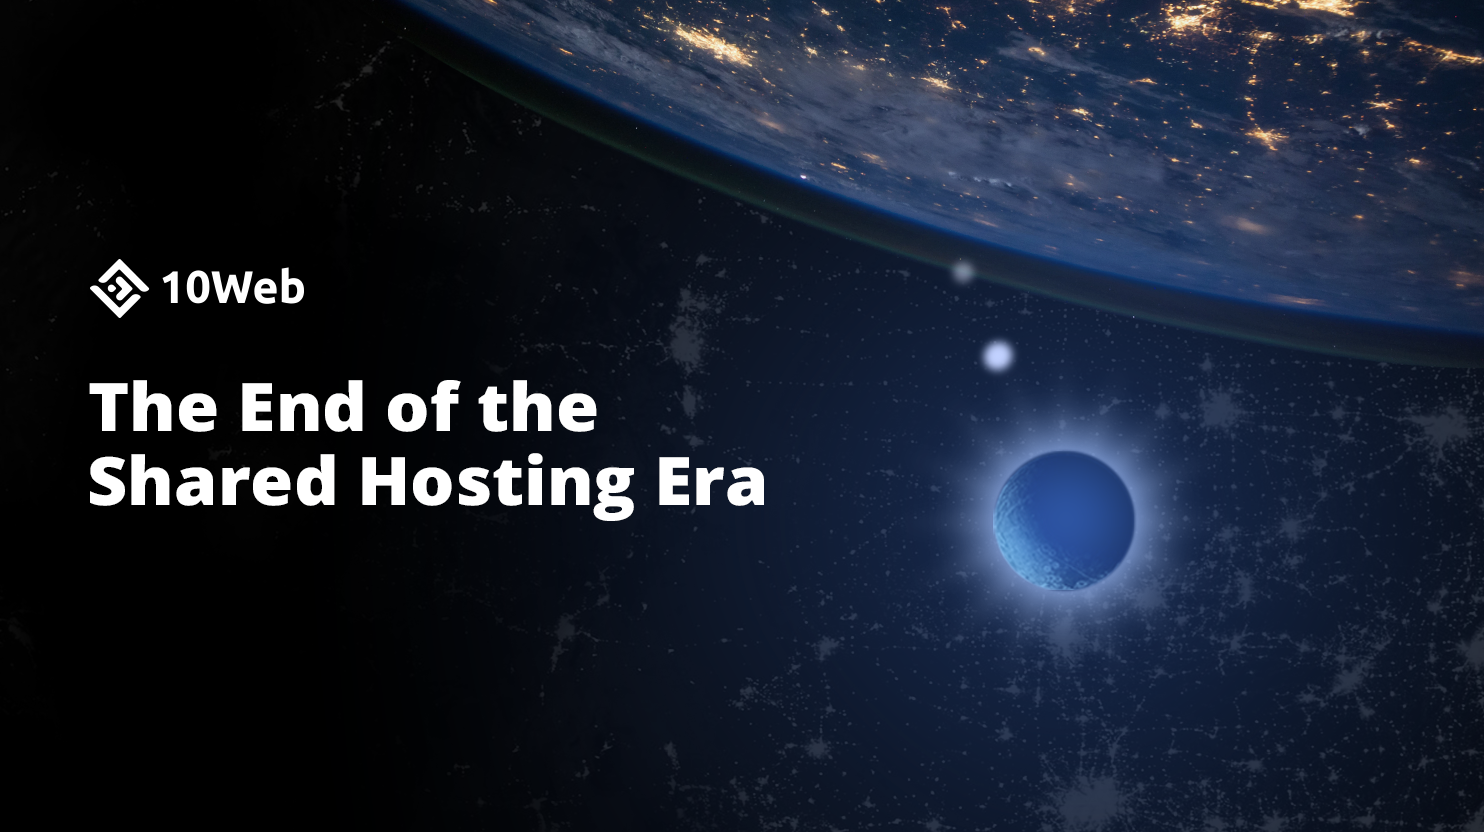 The end of the shared hosting era